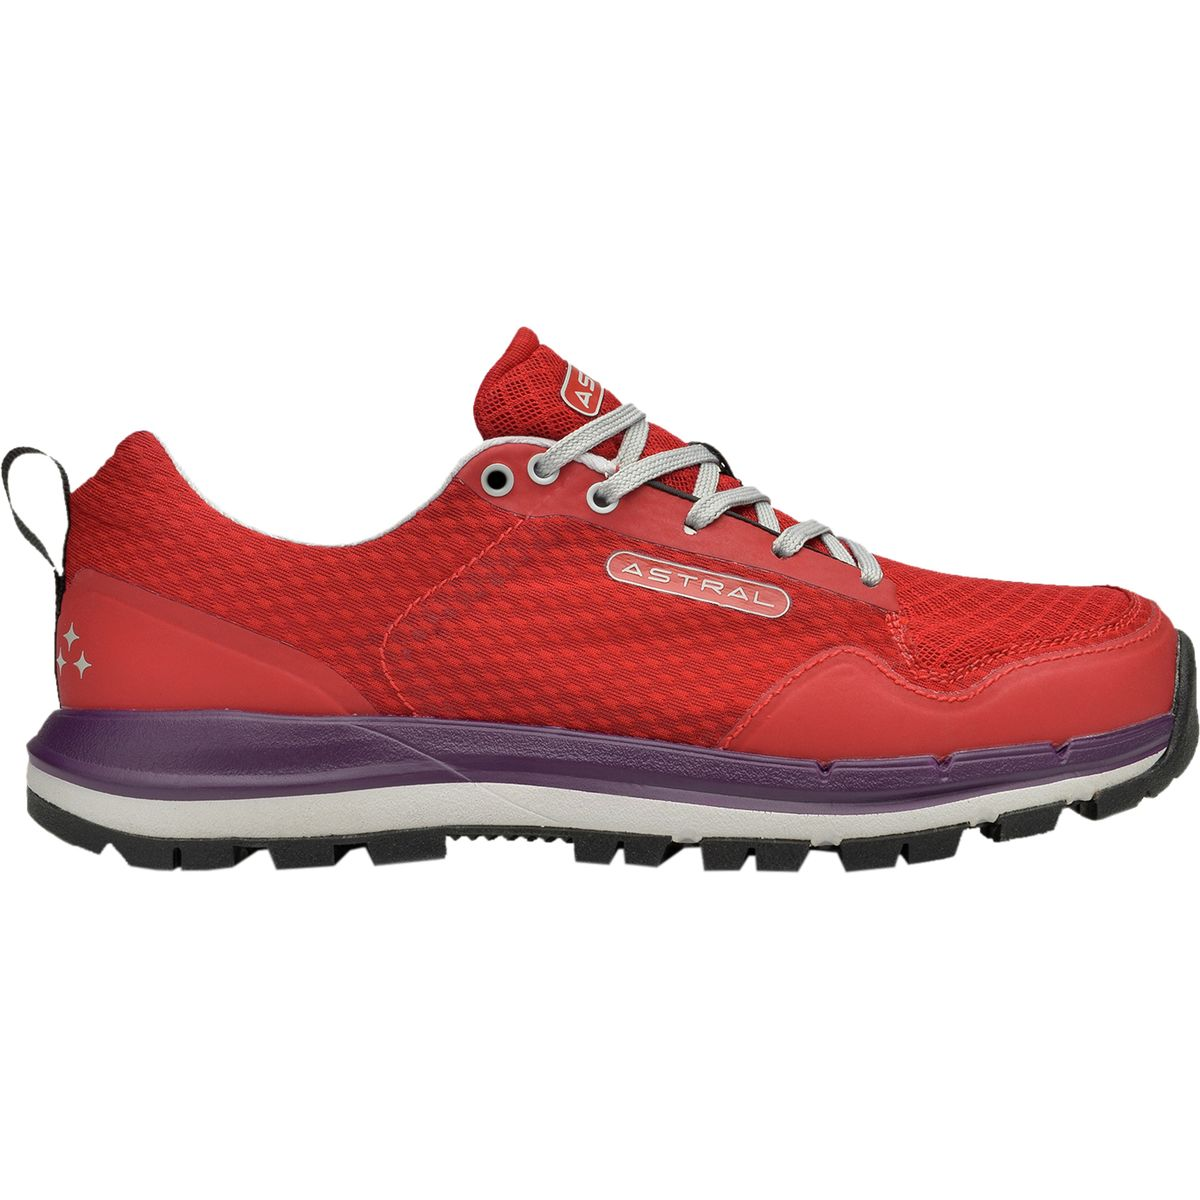 Astral Tr1 Mesh Water Shoe - Women's Rosa Red, 6.0 ASL001O-ROSRD-S6